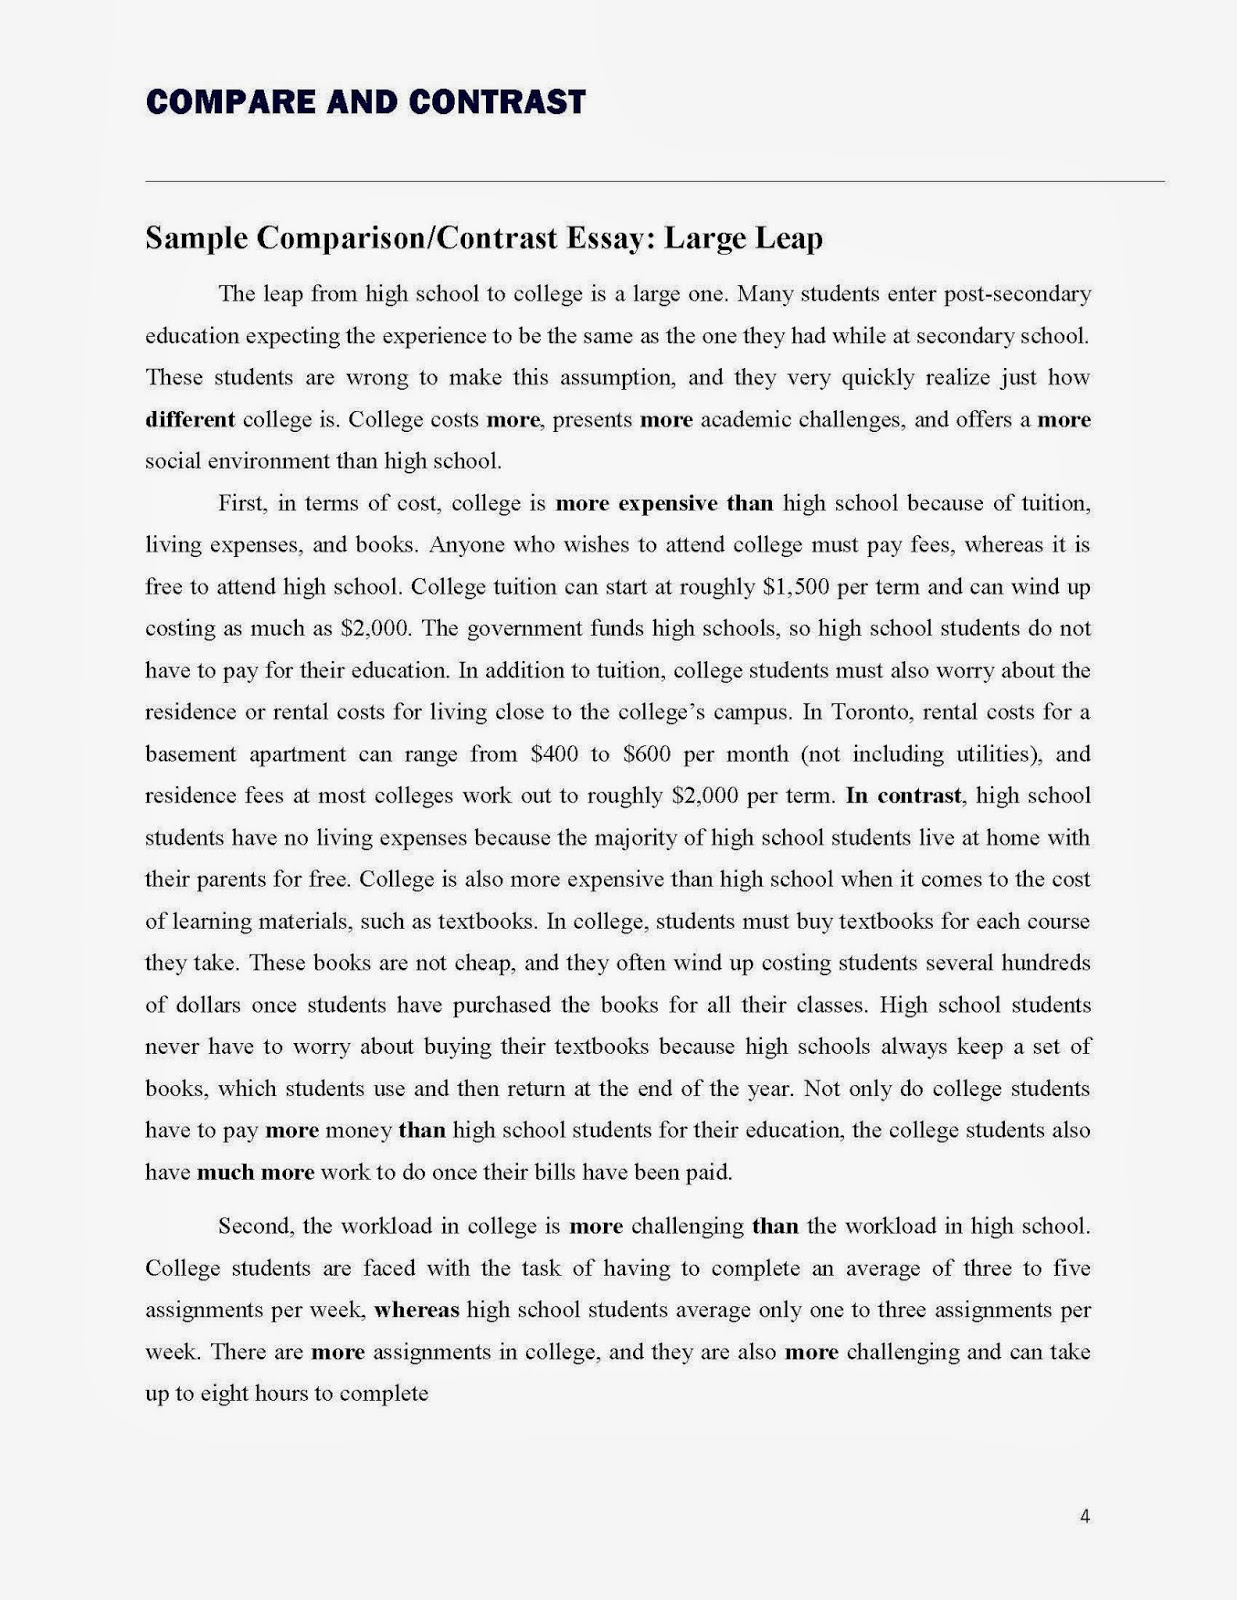 Compare and contrast papers